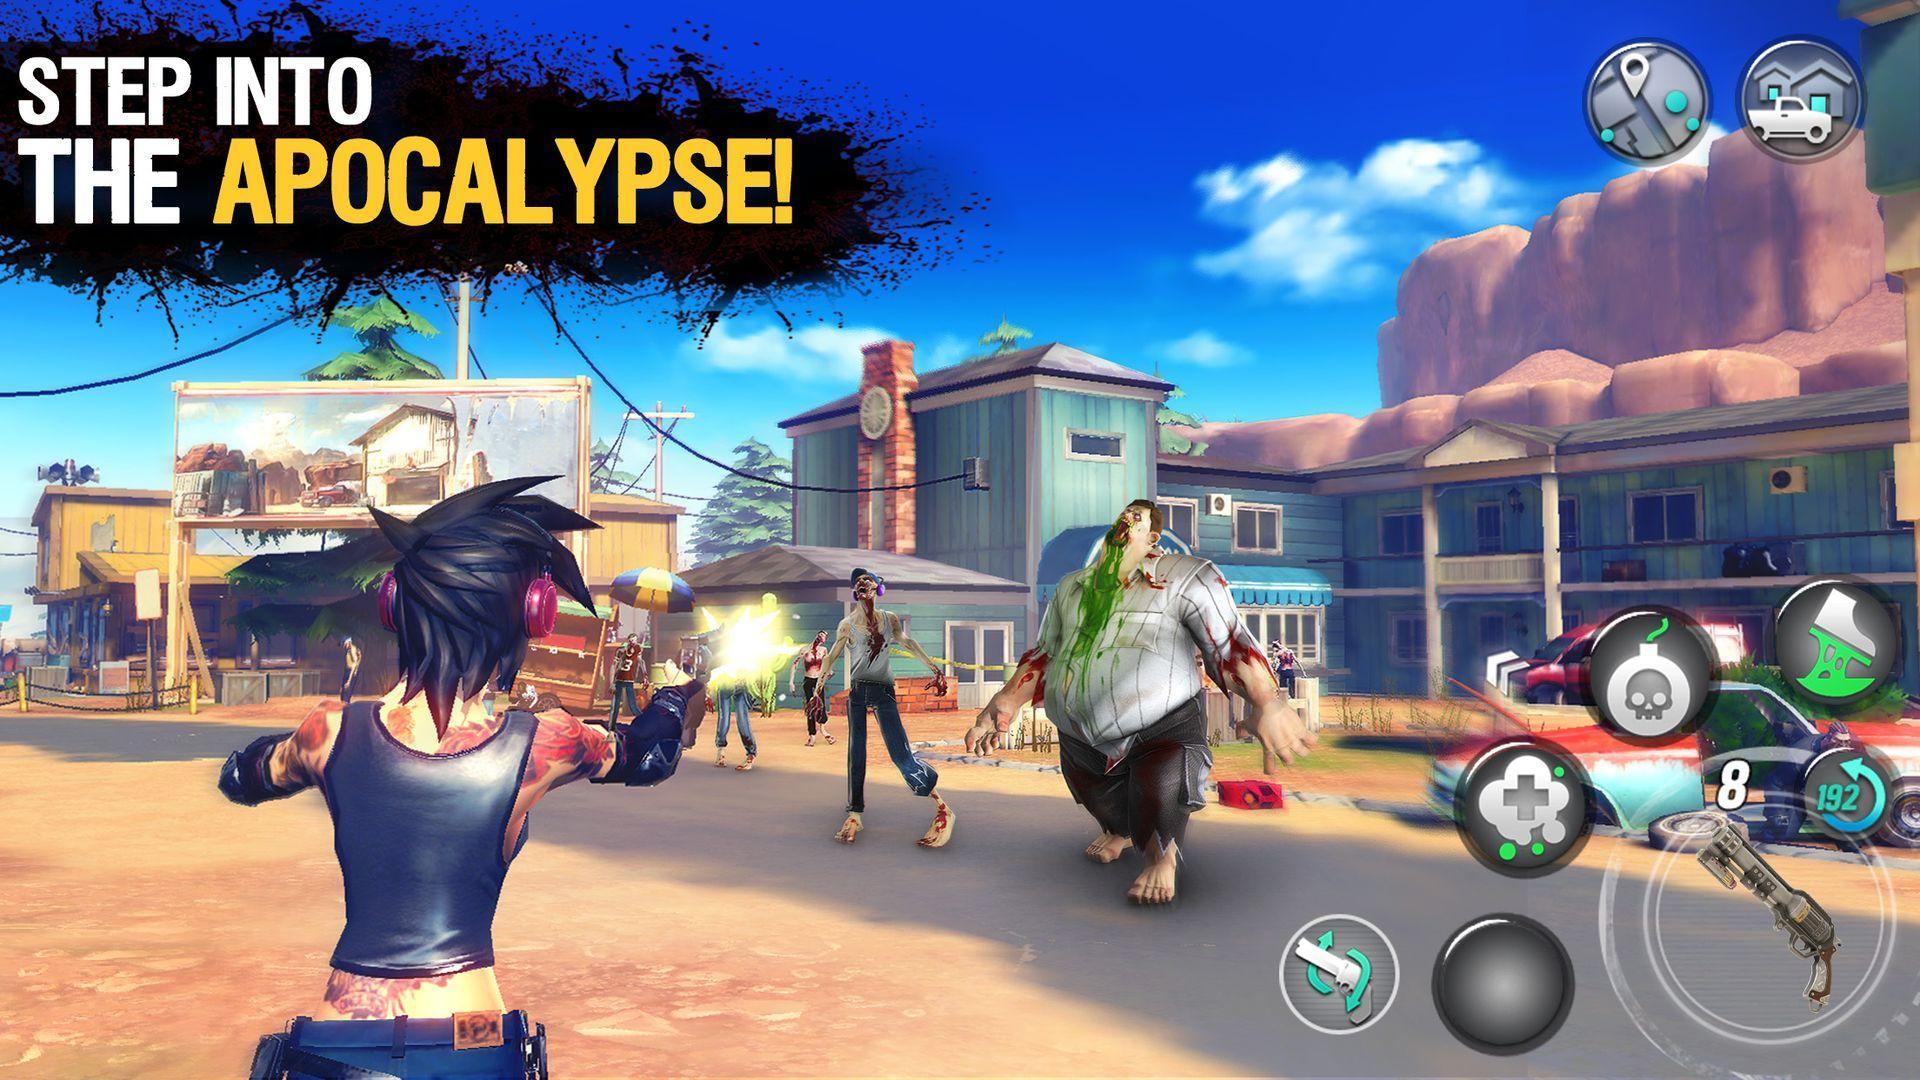 Dead Rivals for Android - APK Download